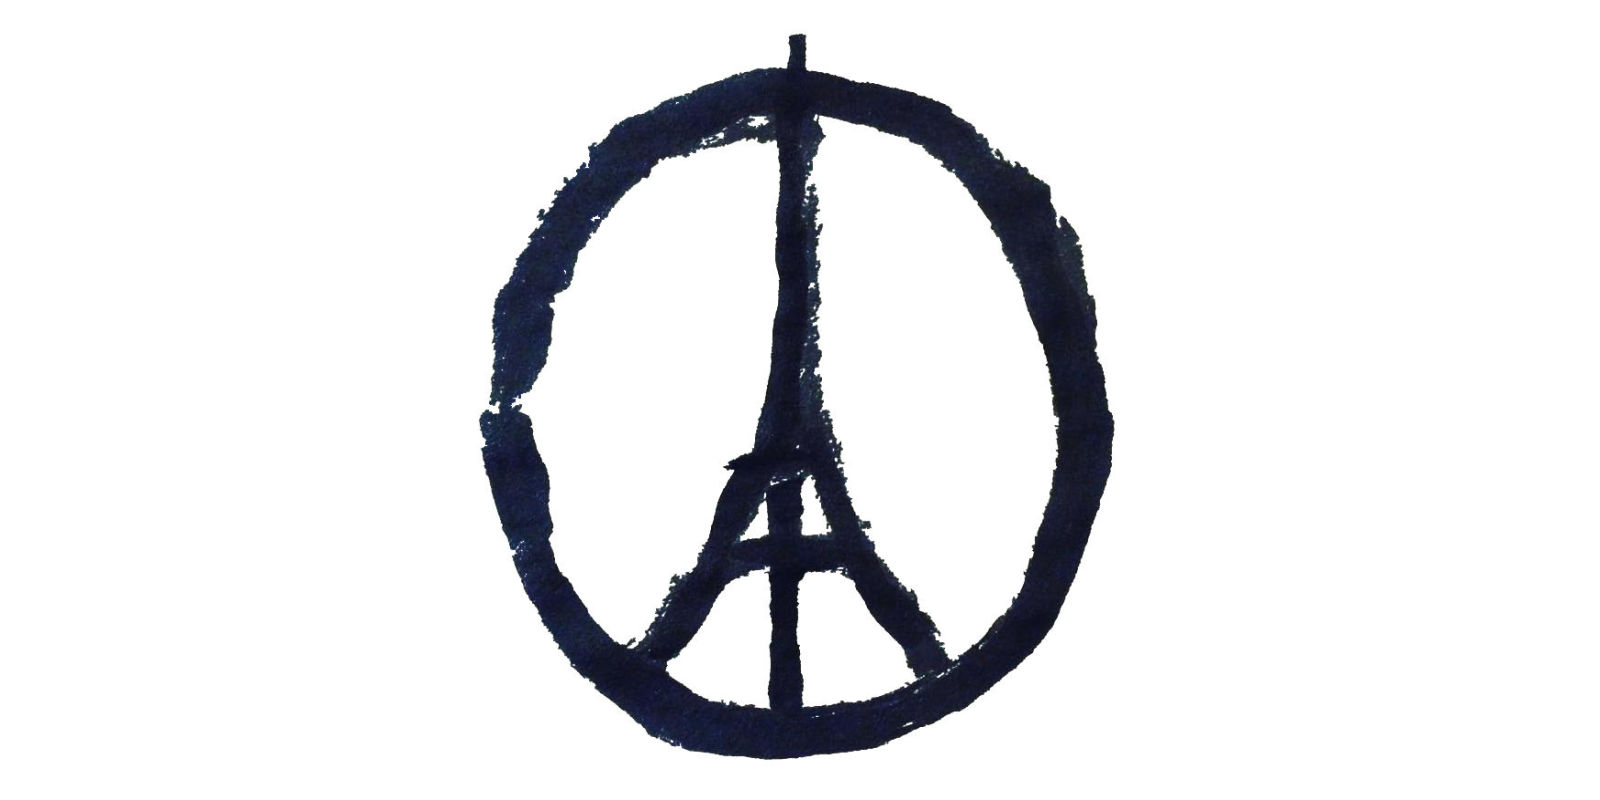 peace-for-paris-icon_GeekDesign